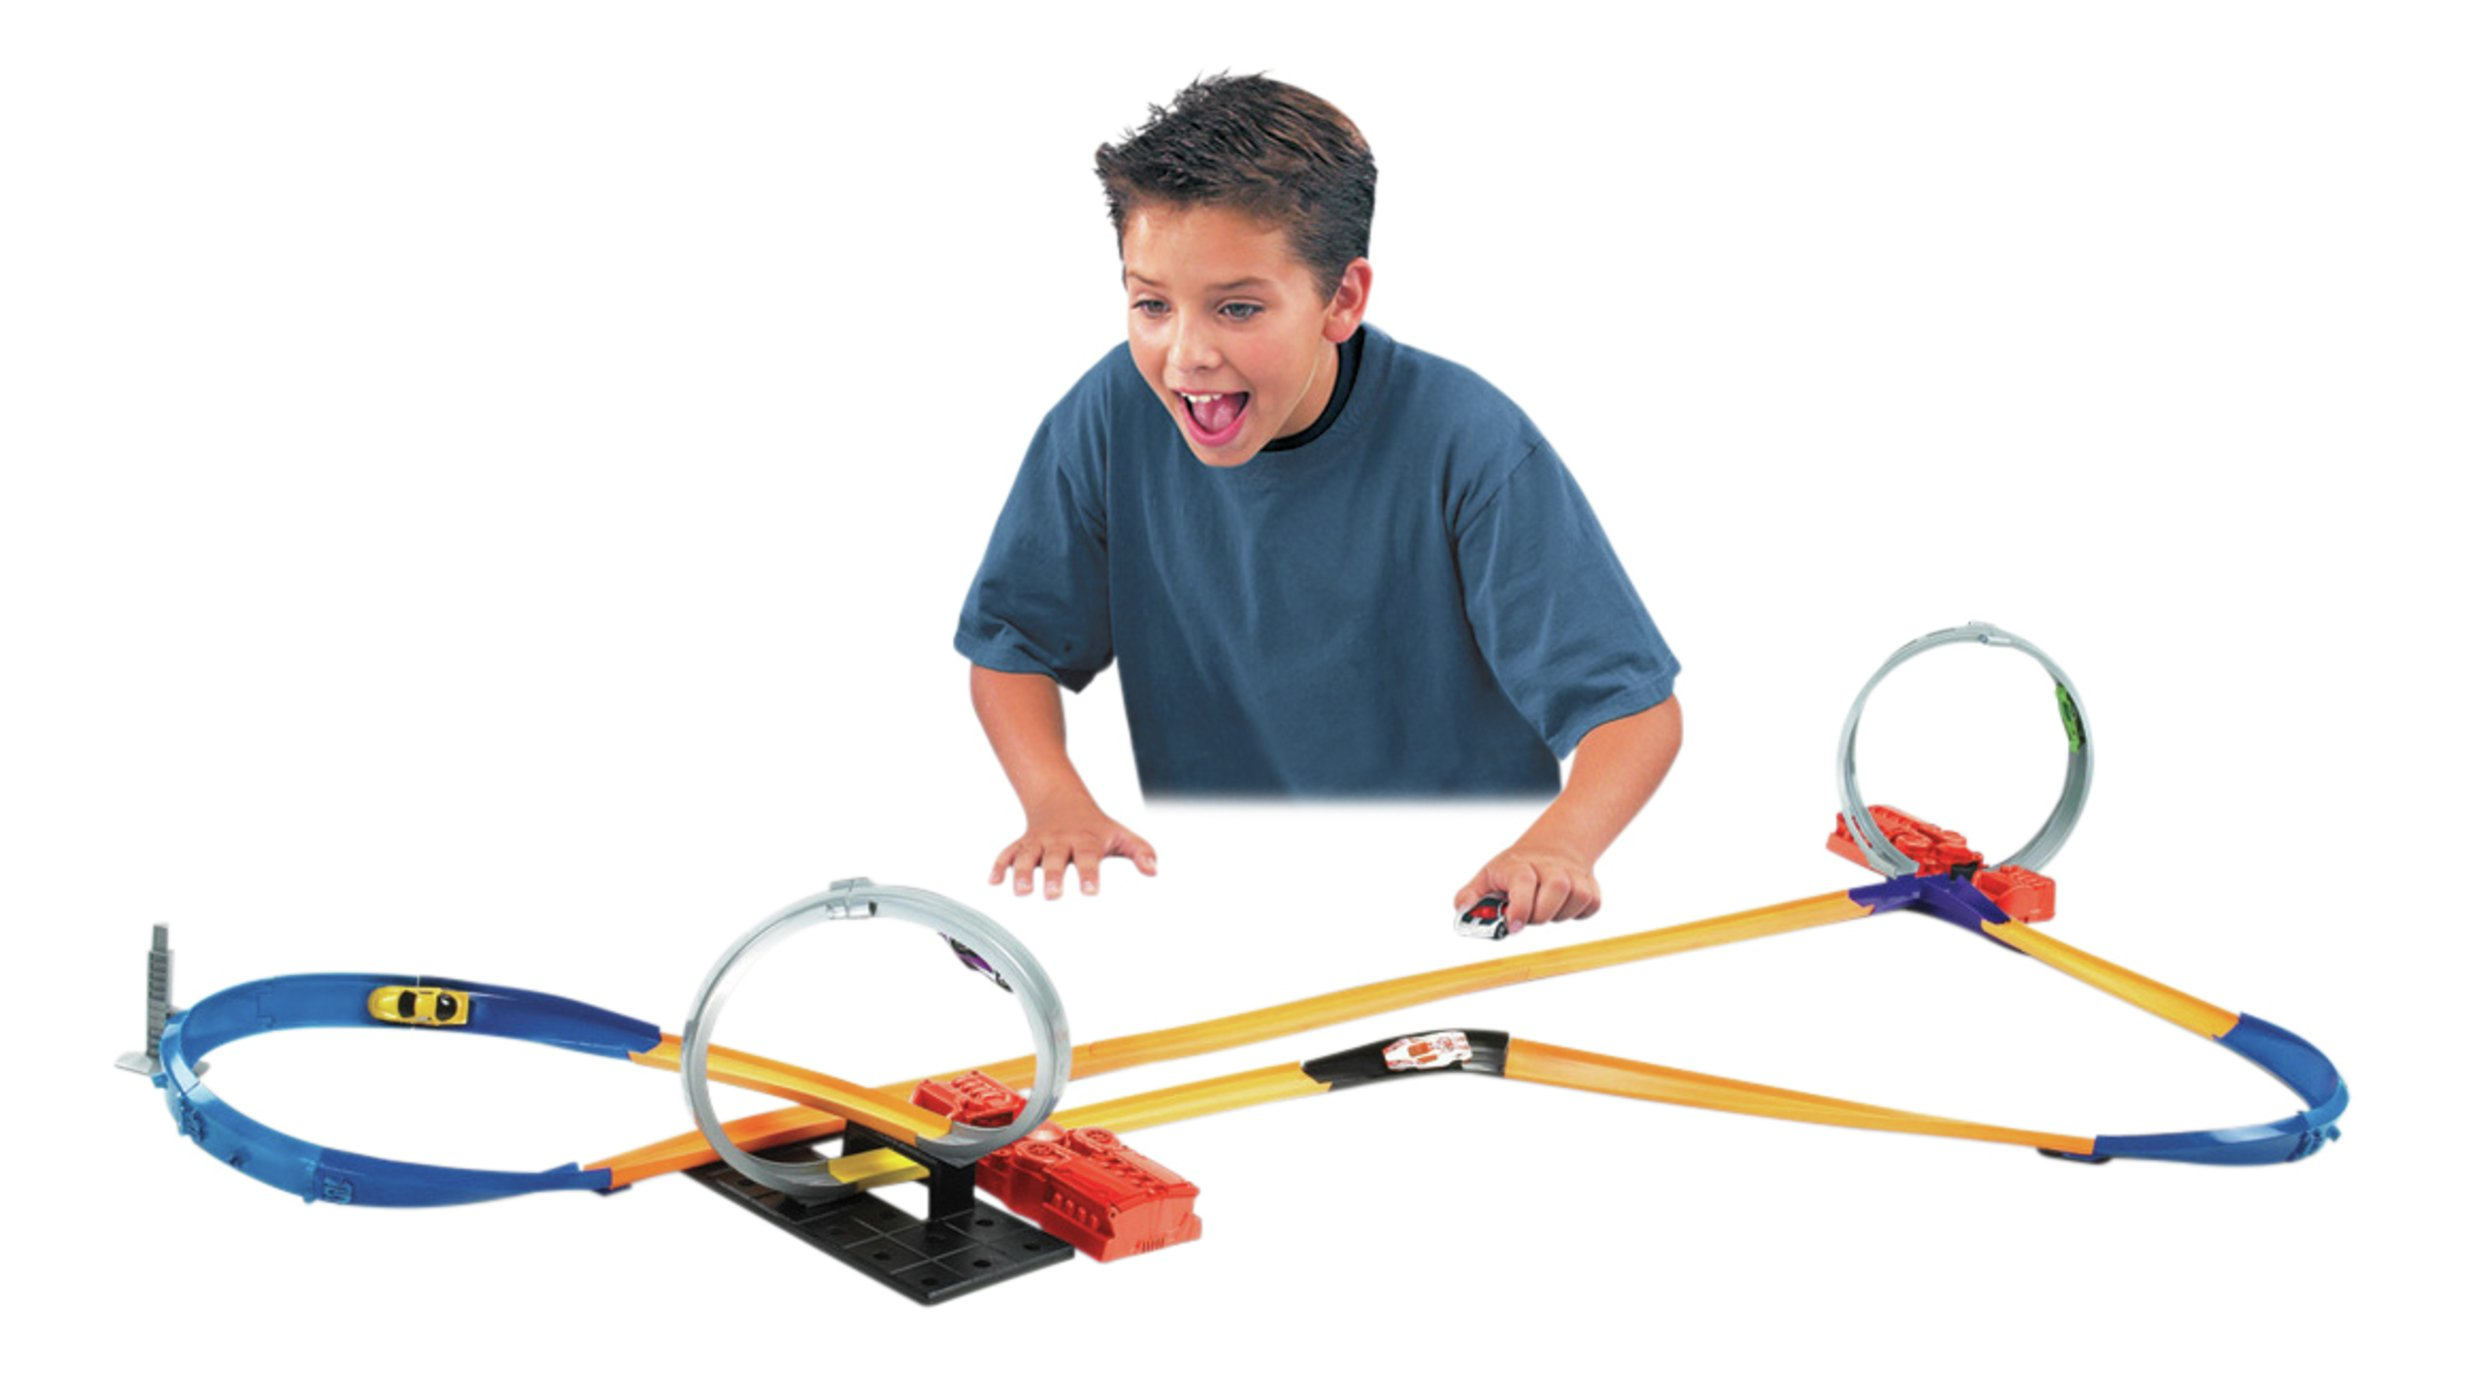 Hot Wheels 10 in 1 Playset